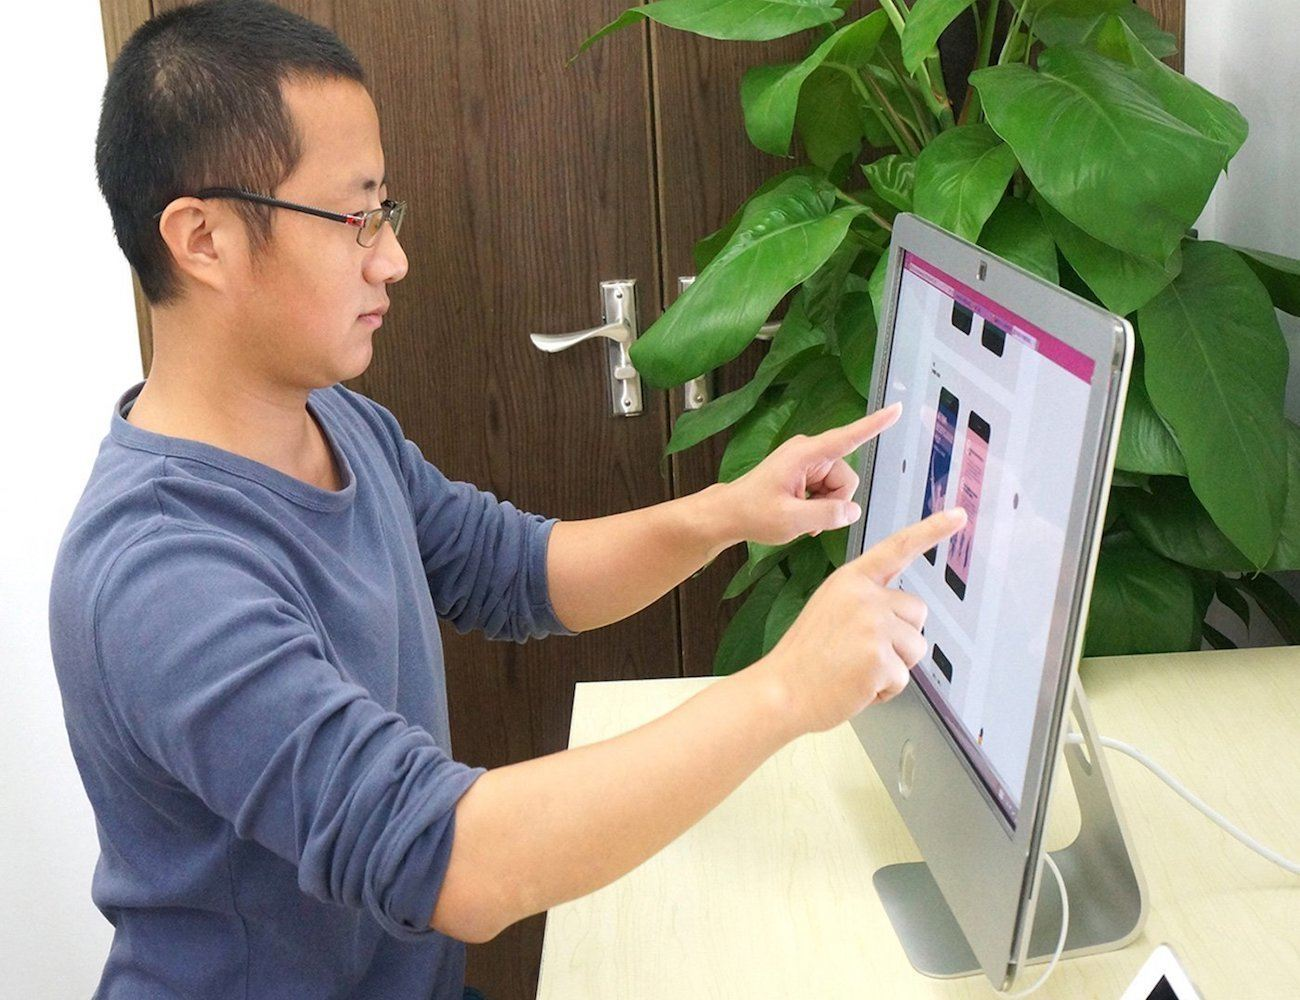 Touchscreen+For+IMac+By+Zorro+Macsk